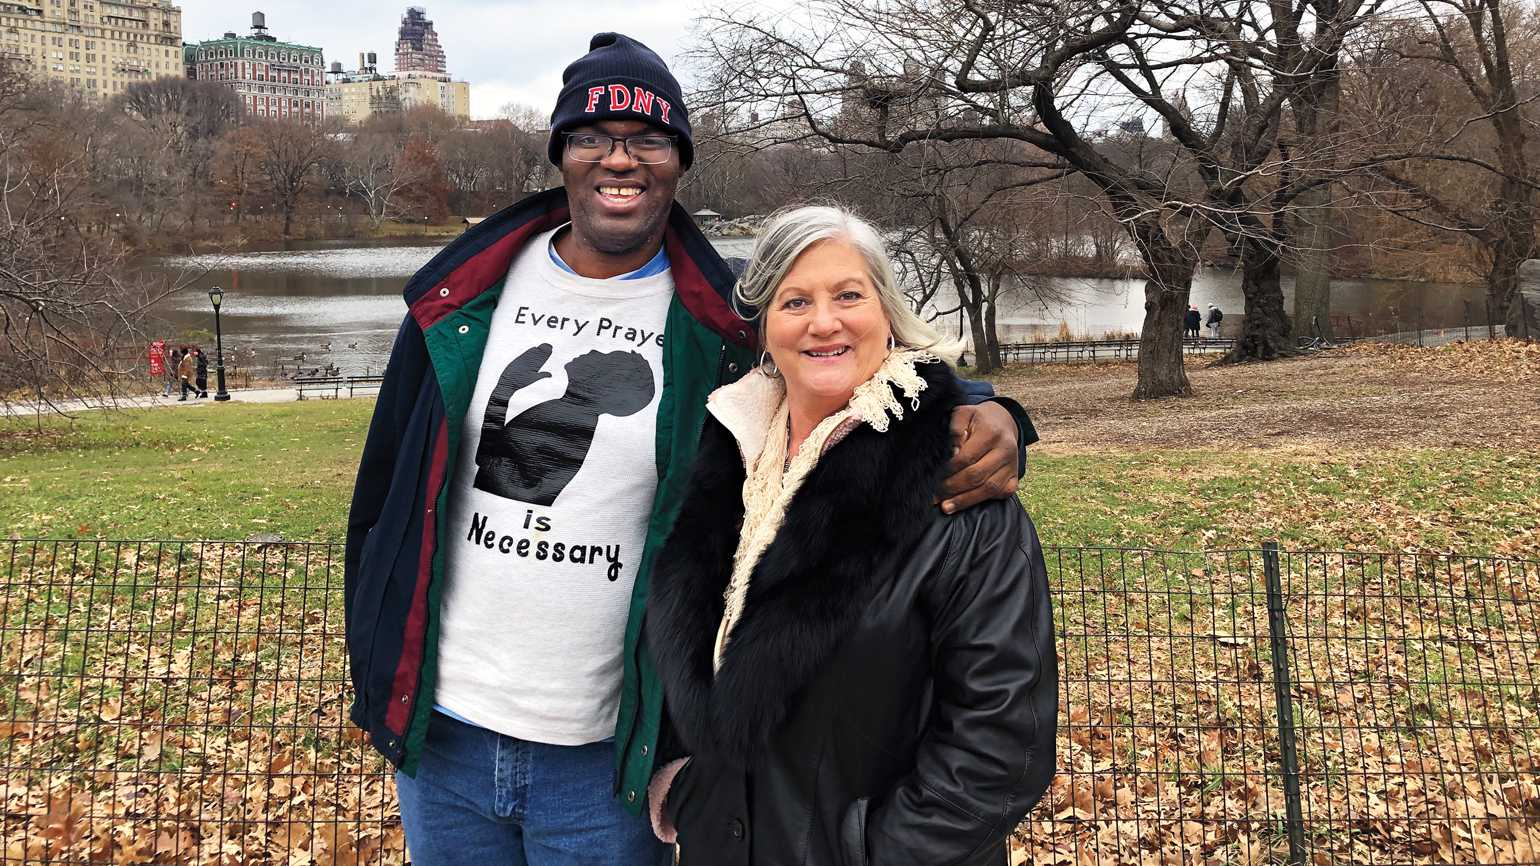 Lori Wood and Jonathan Pickard in Central Park